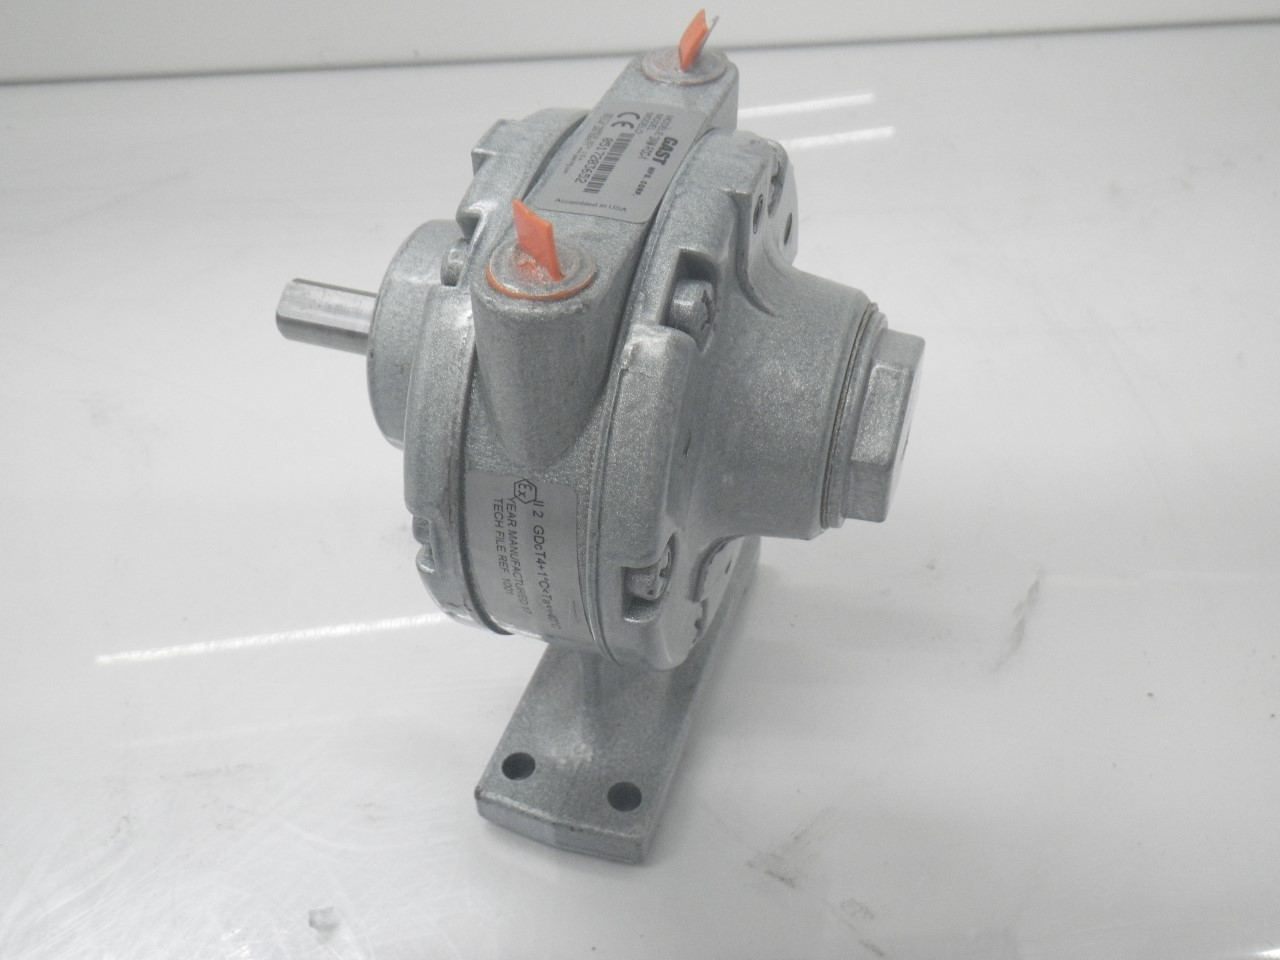 IMGP11832AM-FCC-1 Gast Air Motor (Used Tested) (Very Good Condition) (4)